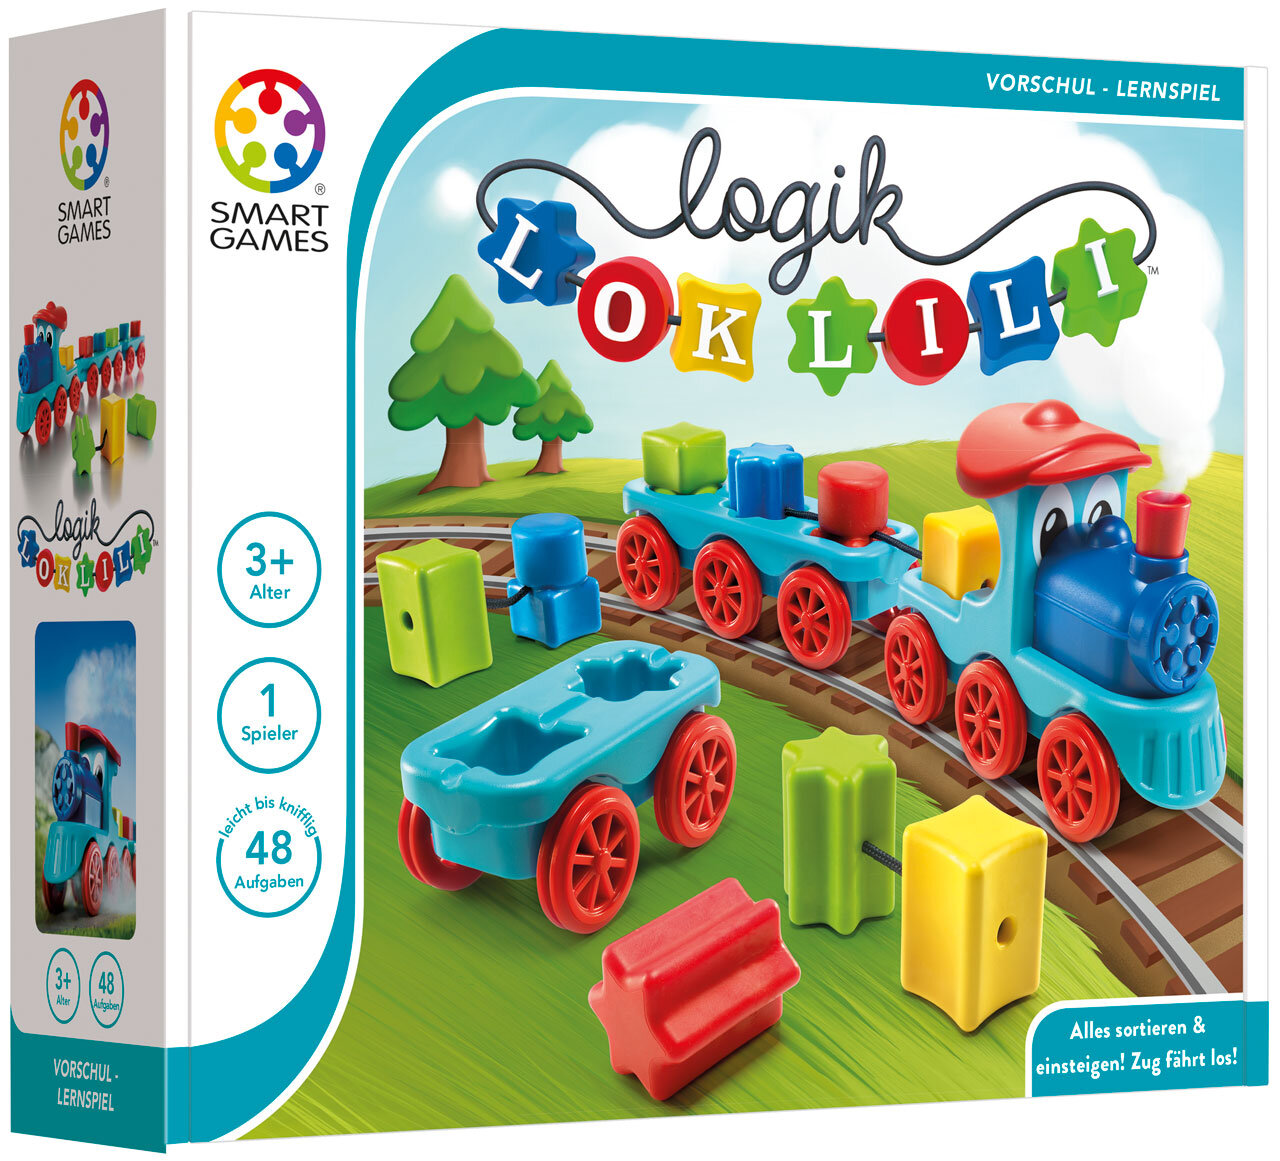 © SMART Toys and Games